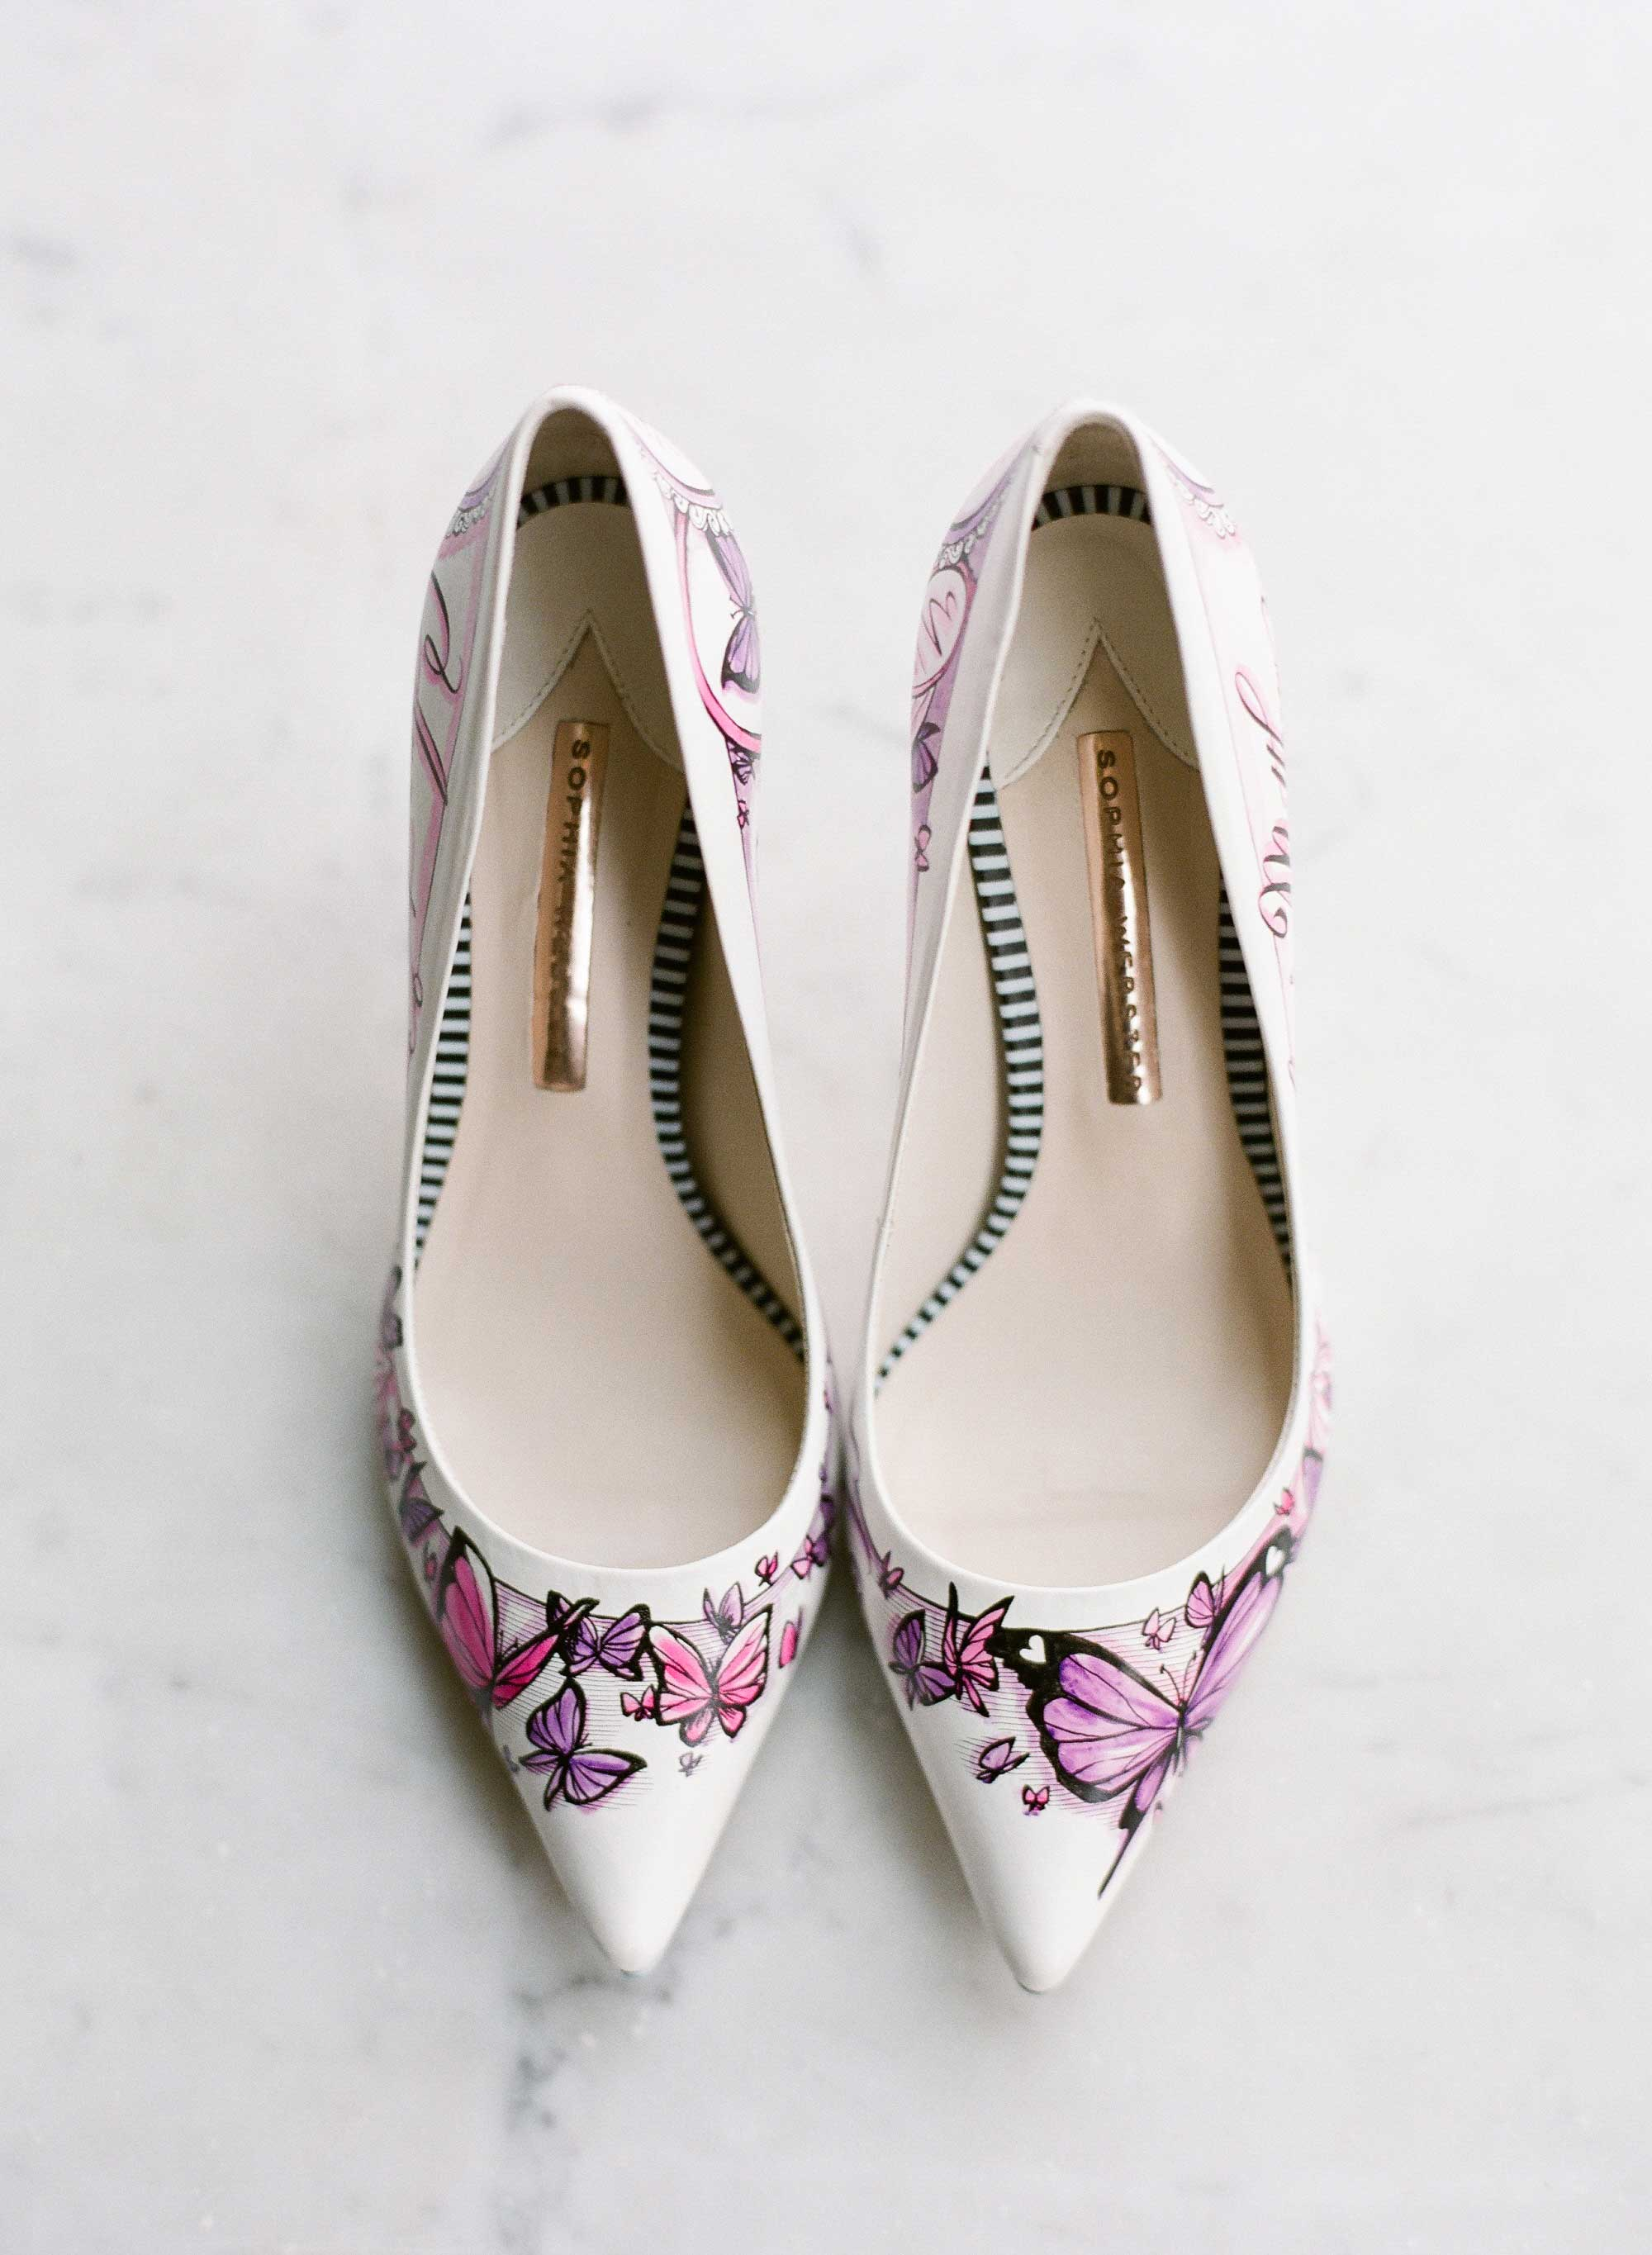 Hand painted figge couture wedding shoes that aren't boring